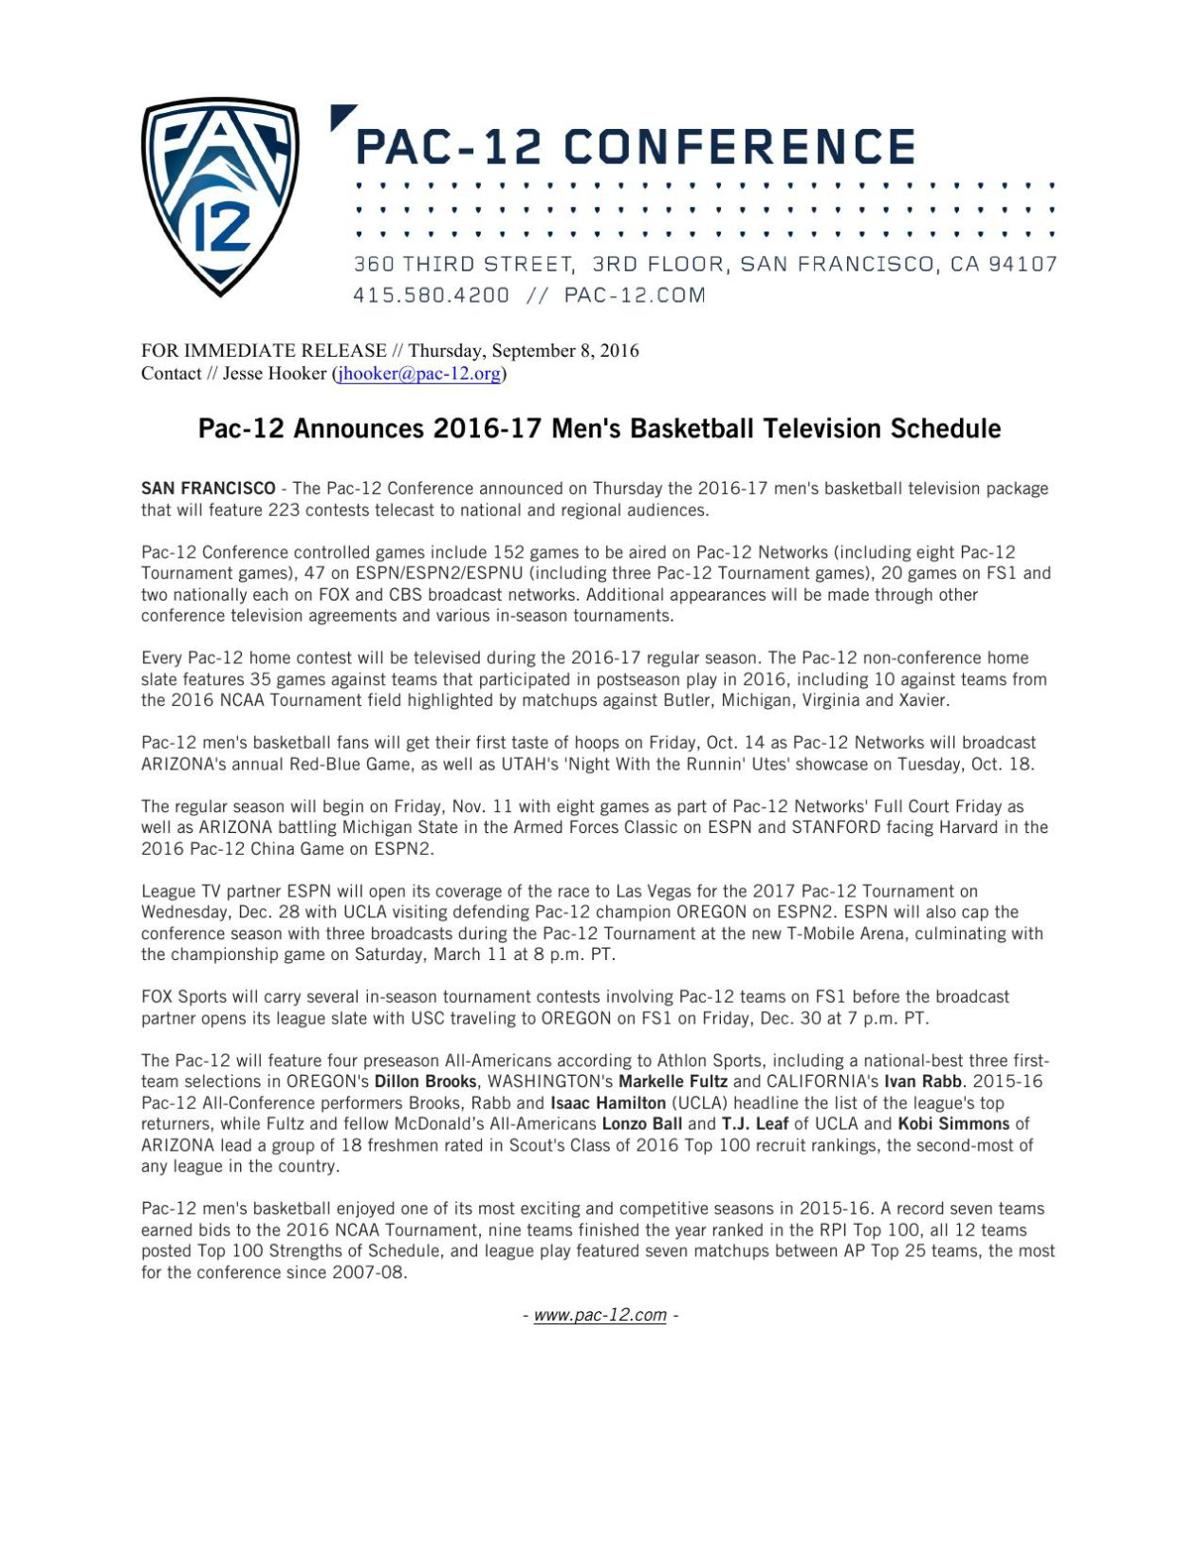 Full Pac 12 Basketball Schedule For 2016 17 Tucson Com